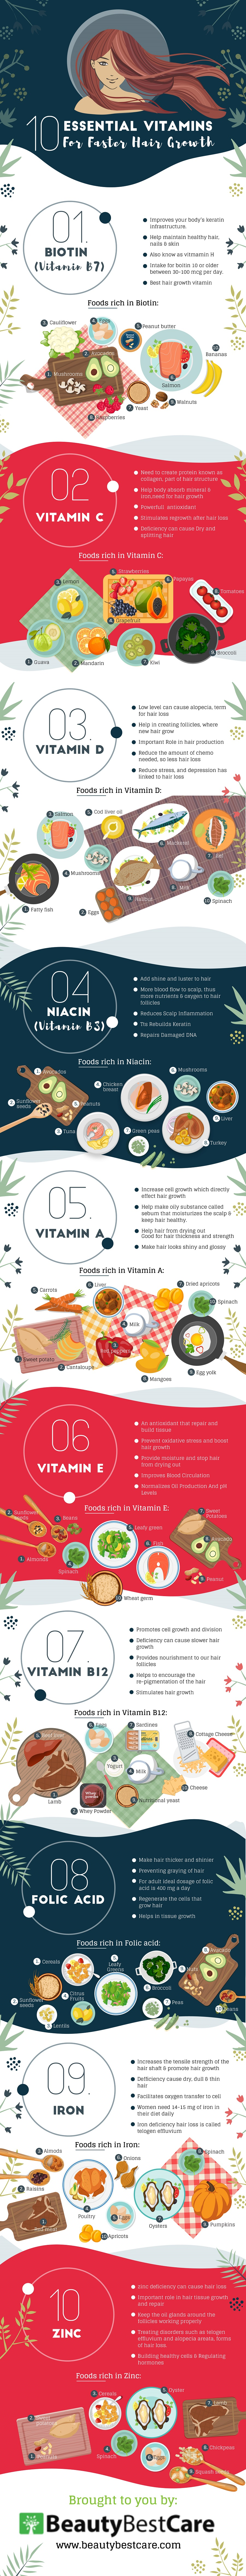 10 Essential Vitamins For Faster Hair Growth by BeautyBestCare